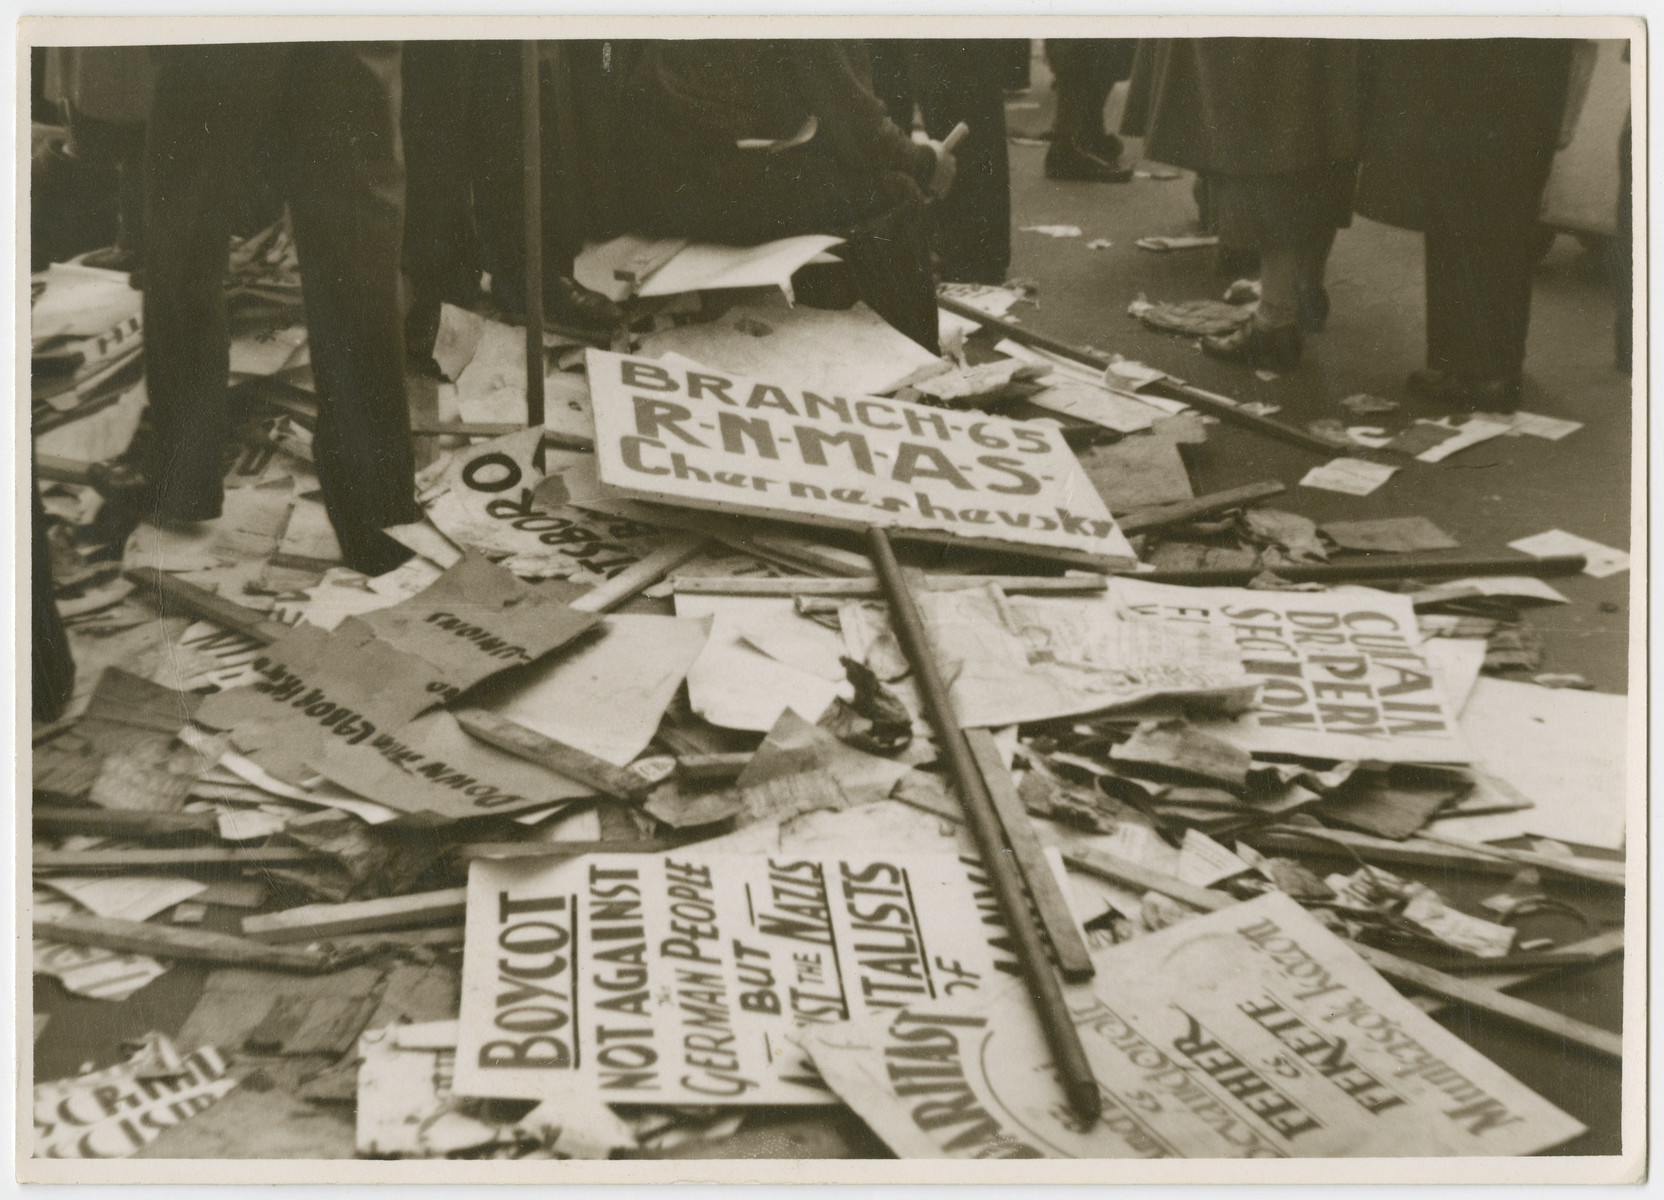 A pile of protest signs about an anti-Nazi boycott lie on the ground.